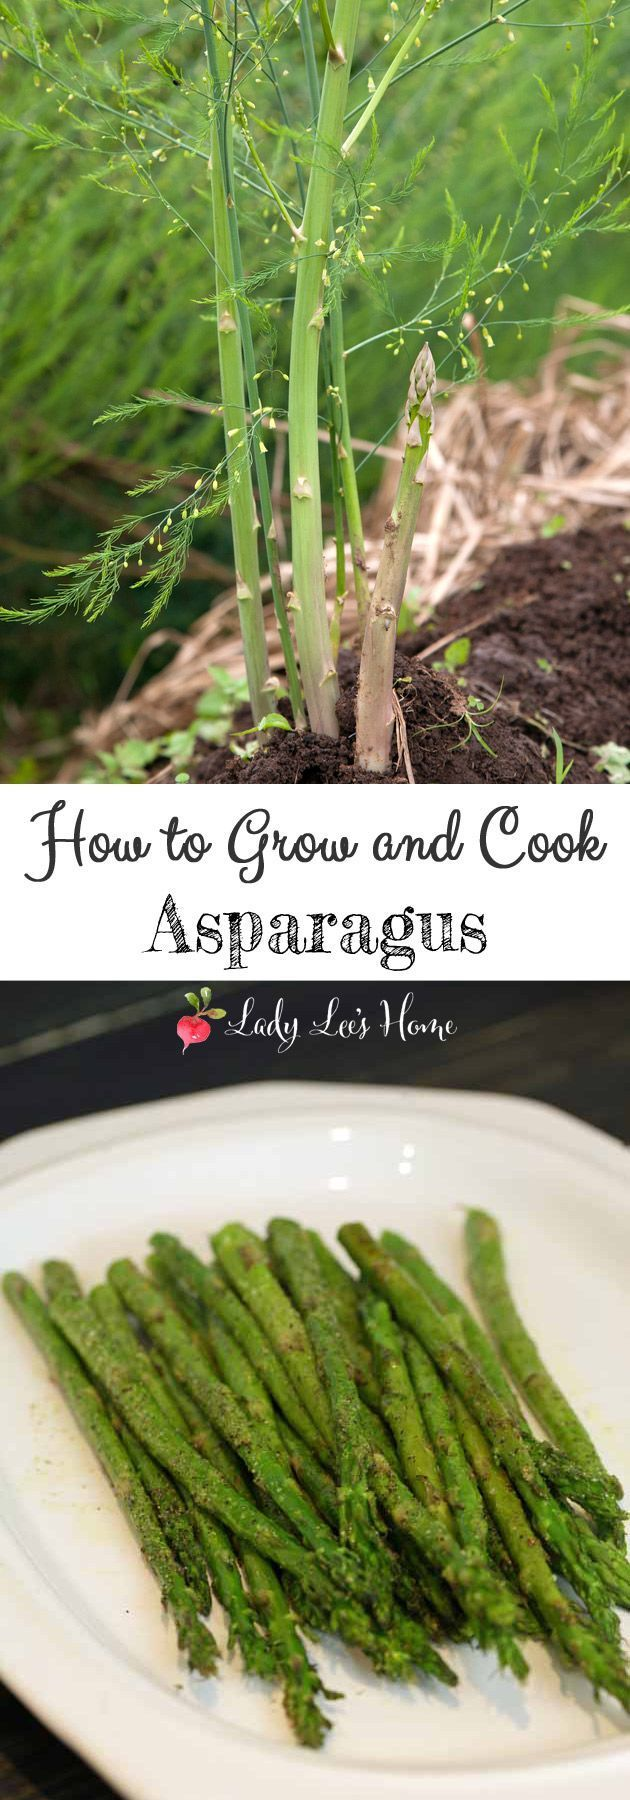 Asparagus Is A Perennial That Once Established In The Garden Will Produce  For Many Years,